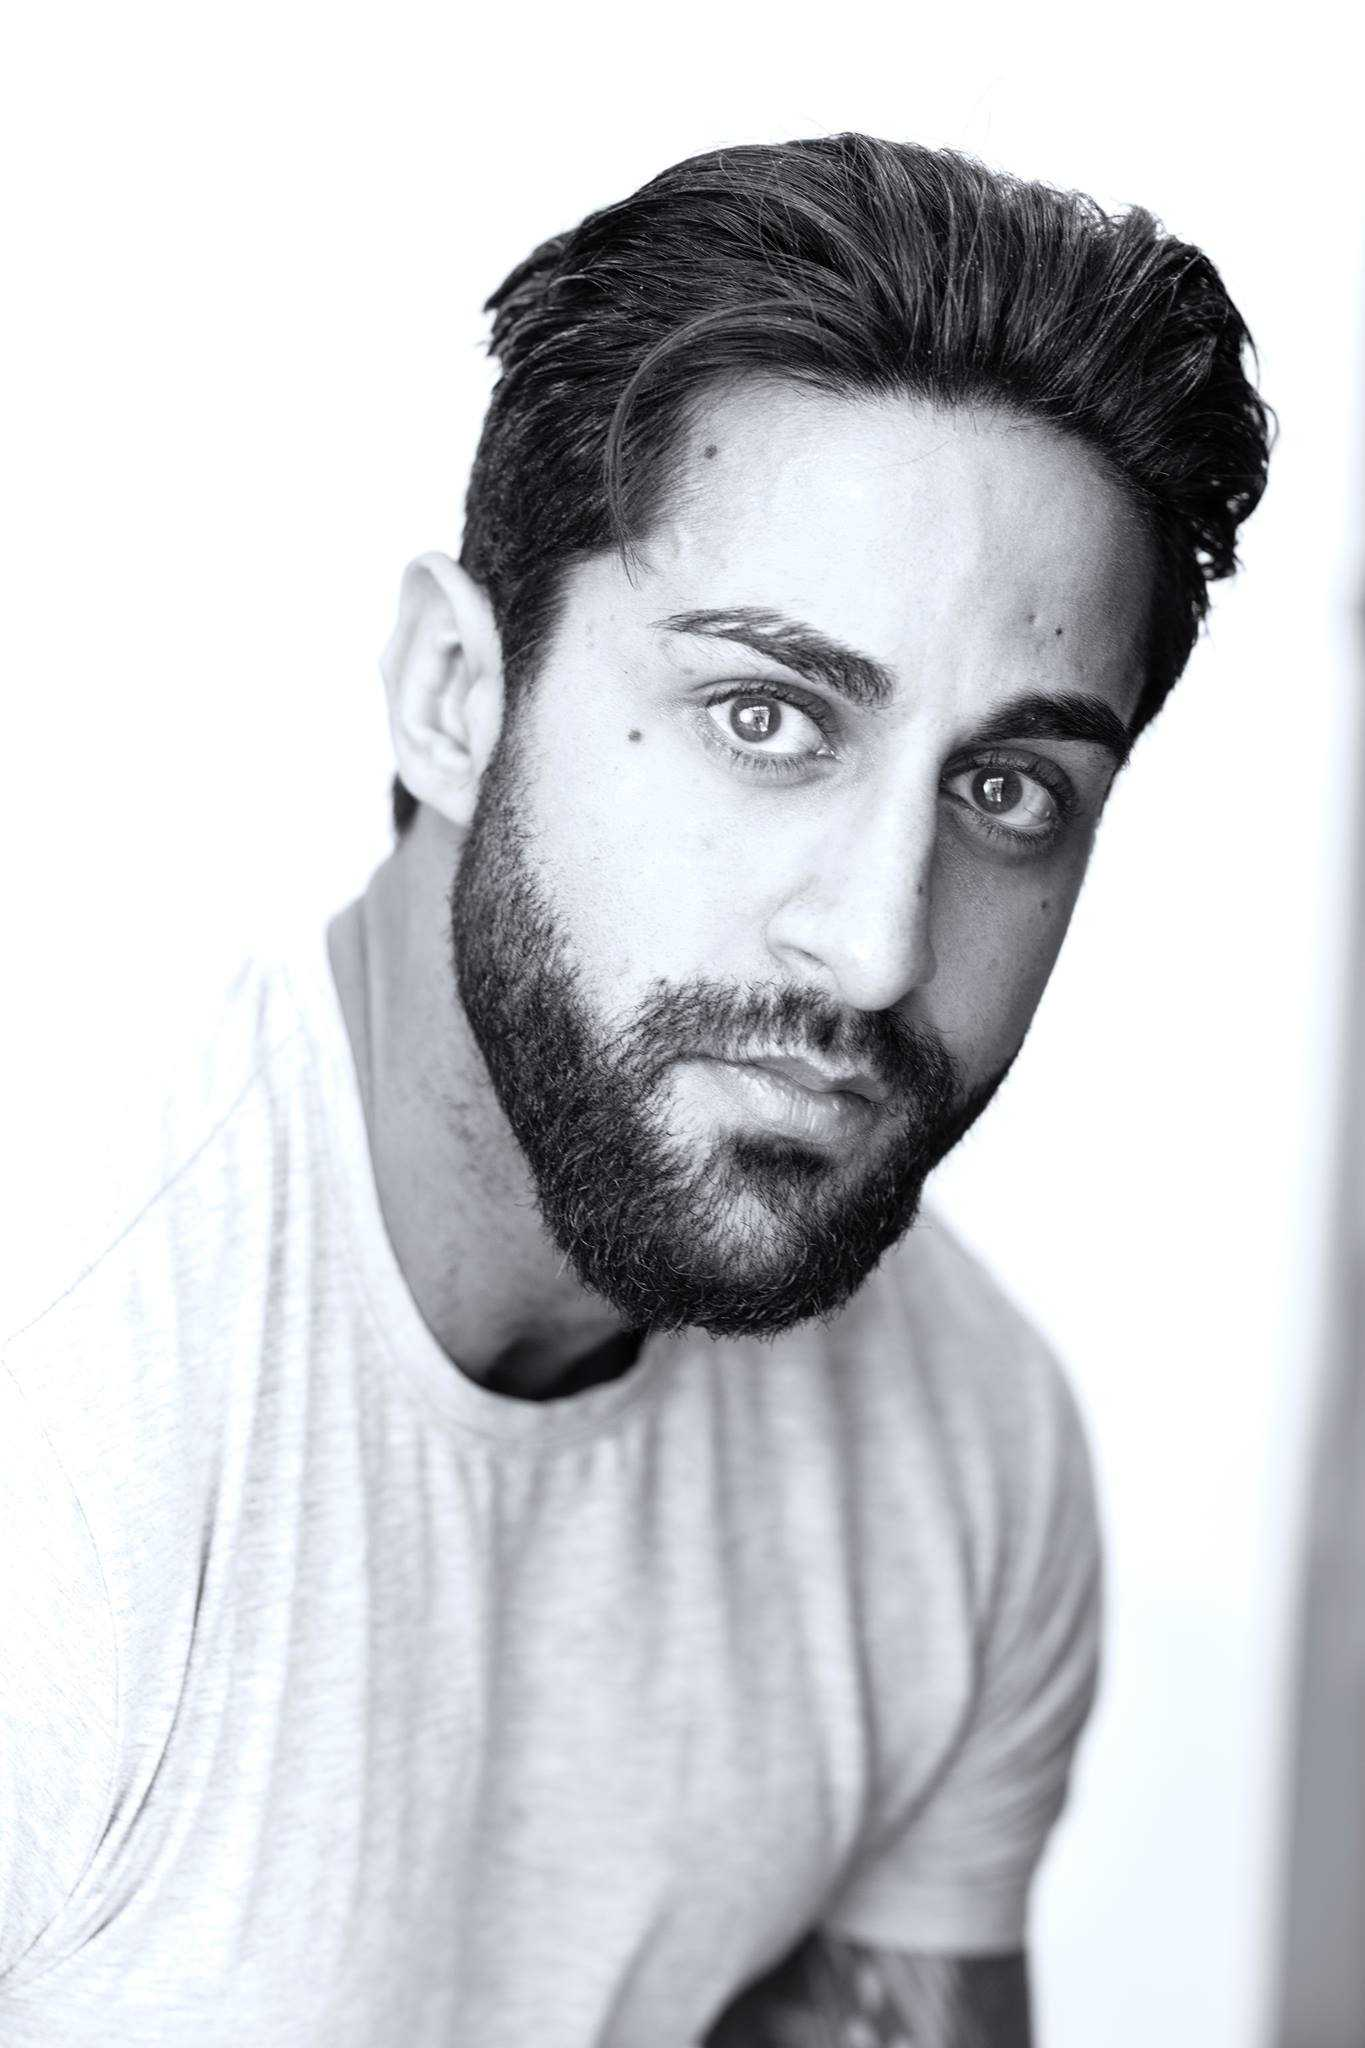 UK's Sunny Dhillon Is Taking Hollywood By Storm | Sunny Dhillon